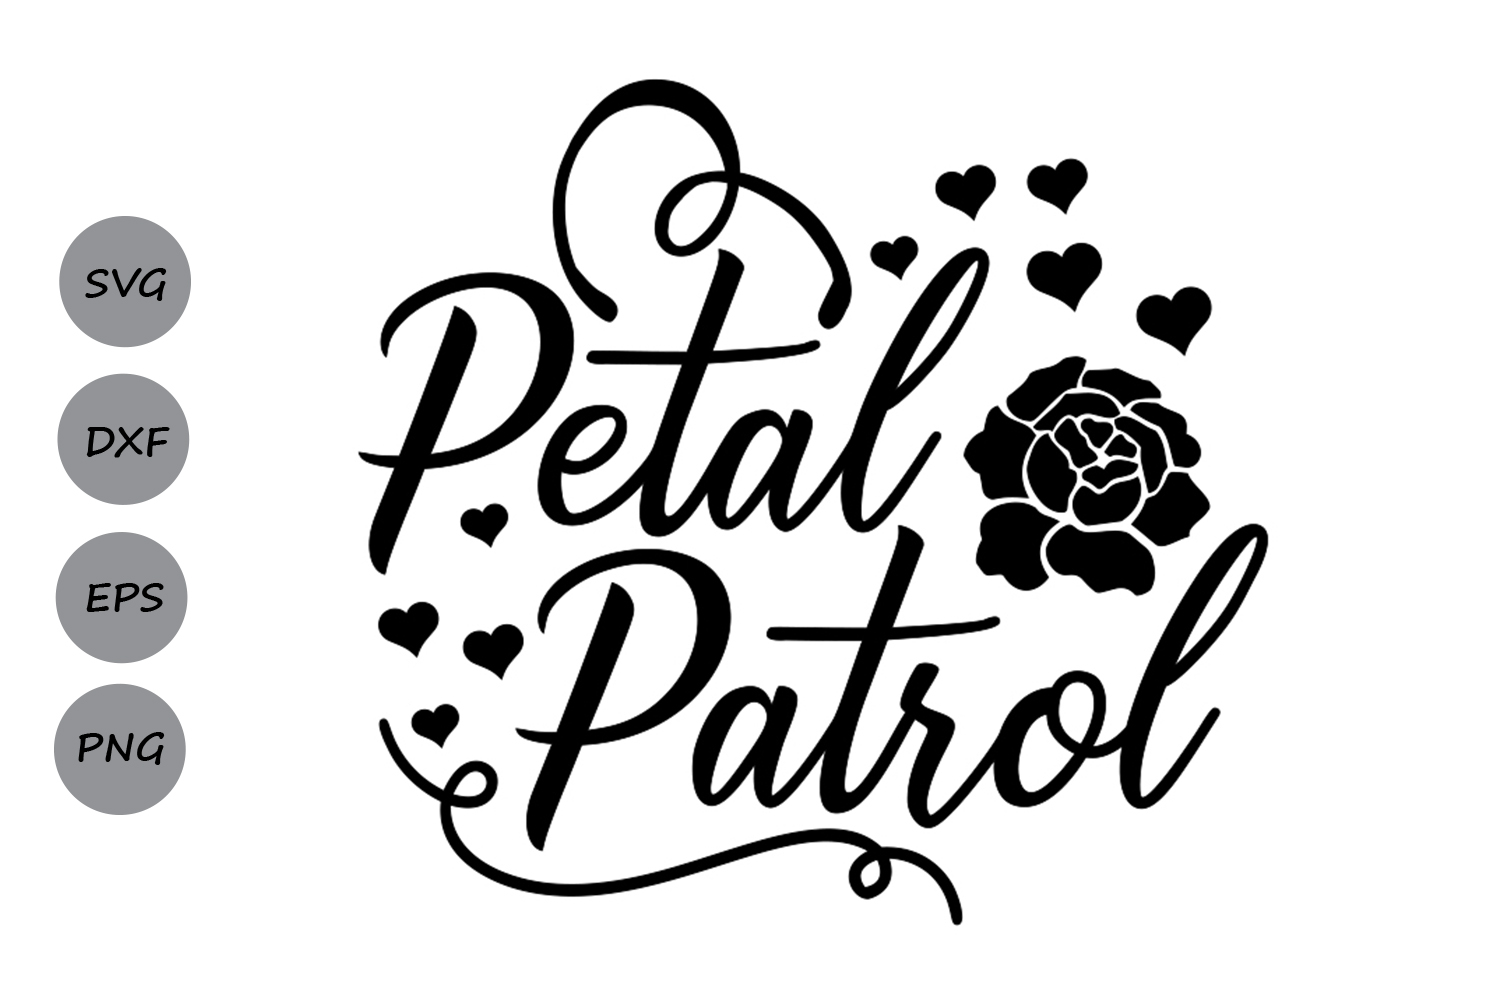 Petal Patrol Svg Wedding Svg Bride Svg Flower Girl Svg